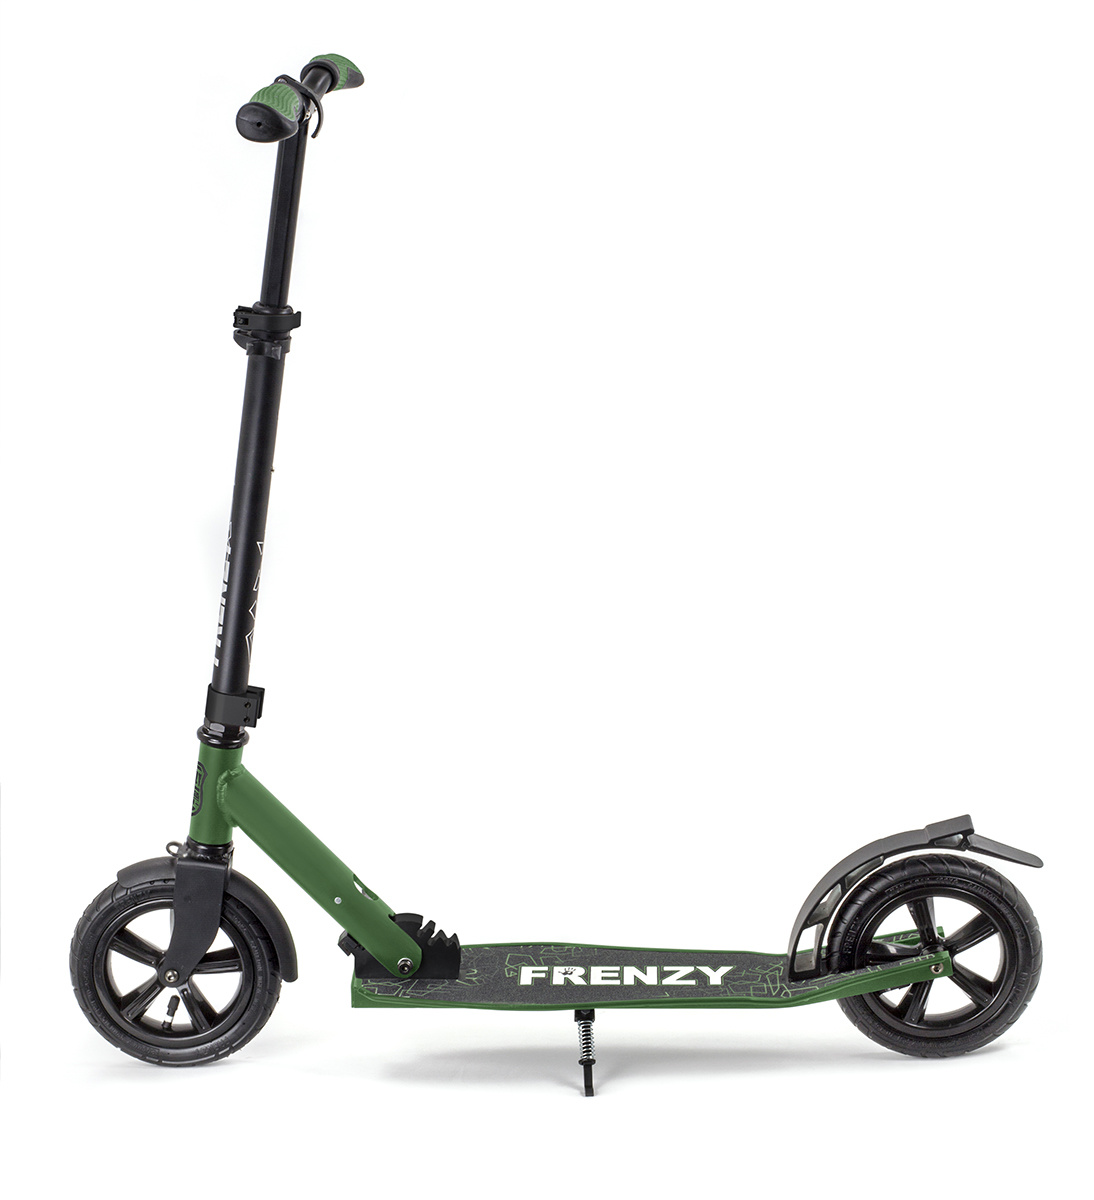 FRENZY SCOOTERS Frenzy Scooter Pneumatic 205mm Cityroller, Military 10+